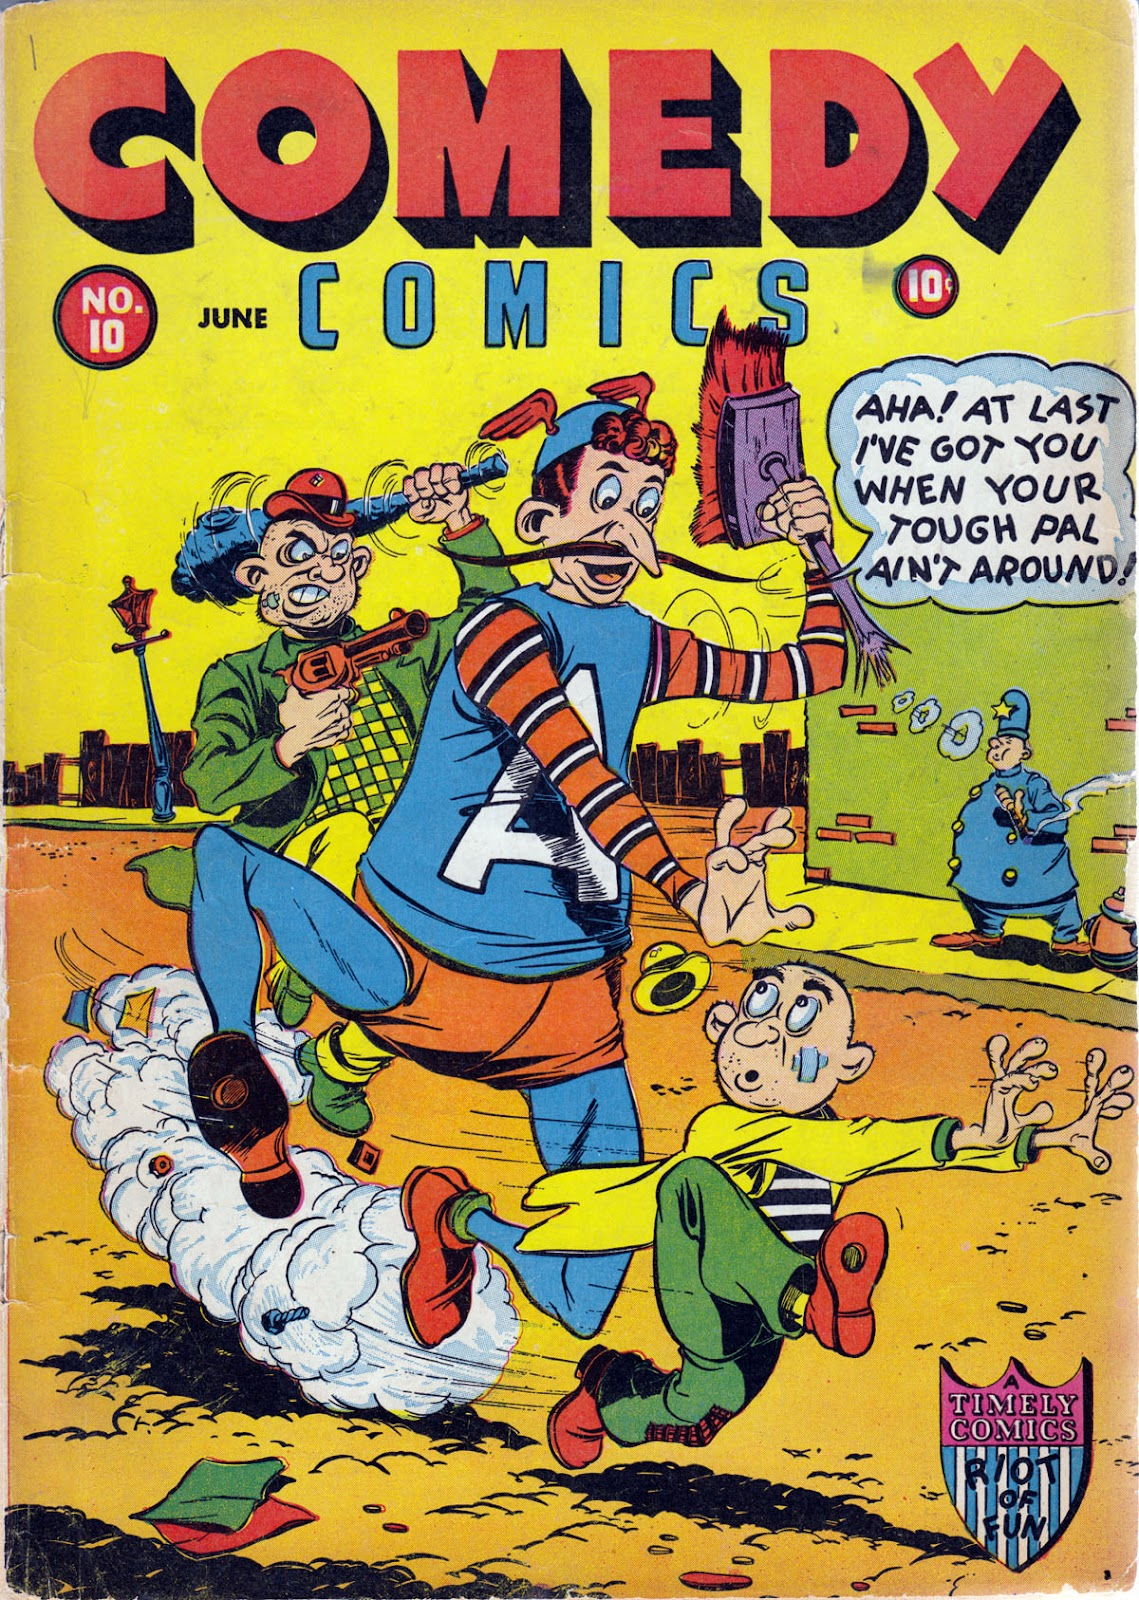 Read online Comedy Comics (1942) comic -  Issue #10 - 1